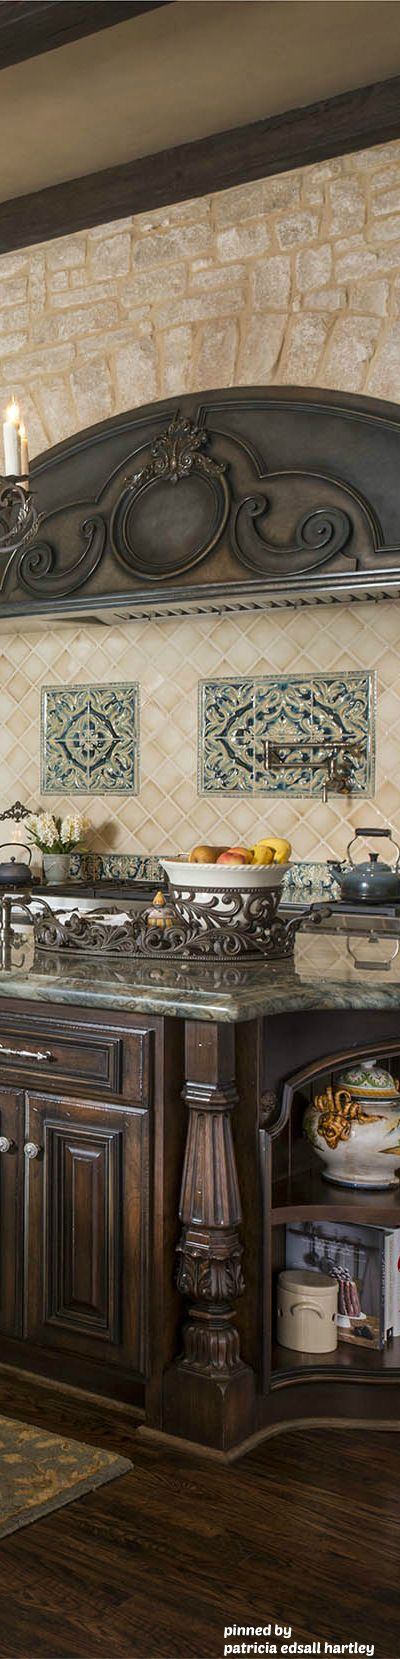 Kitchens Tuscan Kitchens Kitchens Ideas Design Kitchens Kitchen